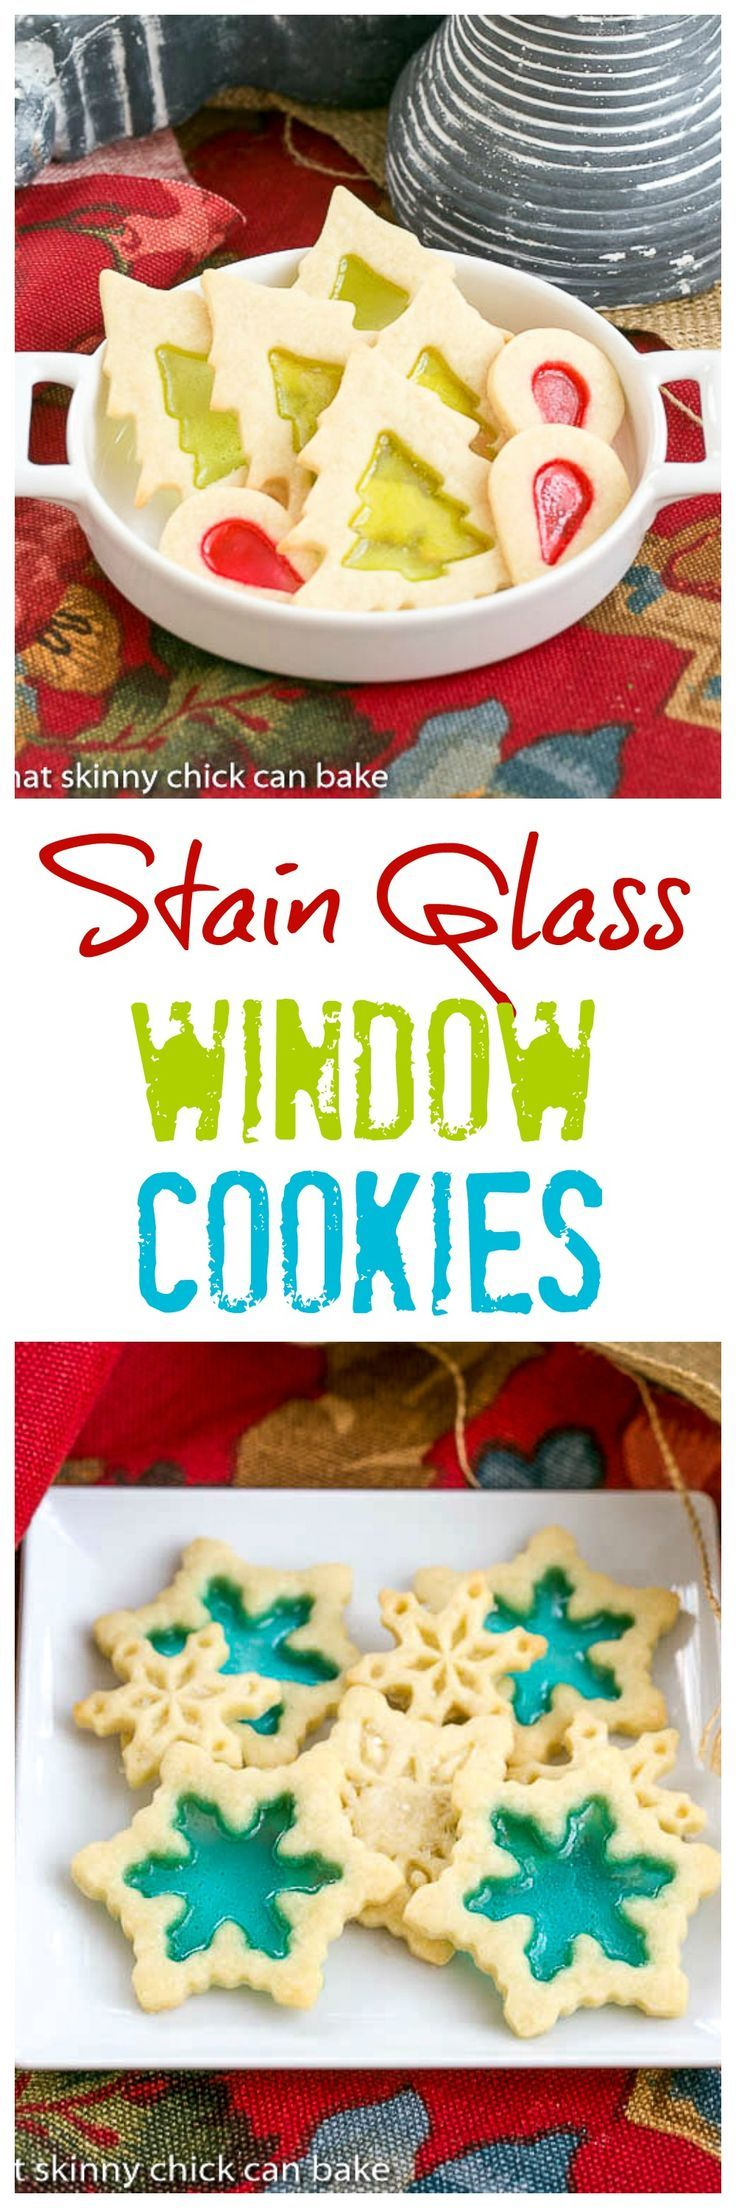 Stained Glass Cookies | Adding a little crushed candy to your sugar cookies makes for a fabulous holiday cookie! @lizzydo